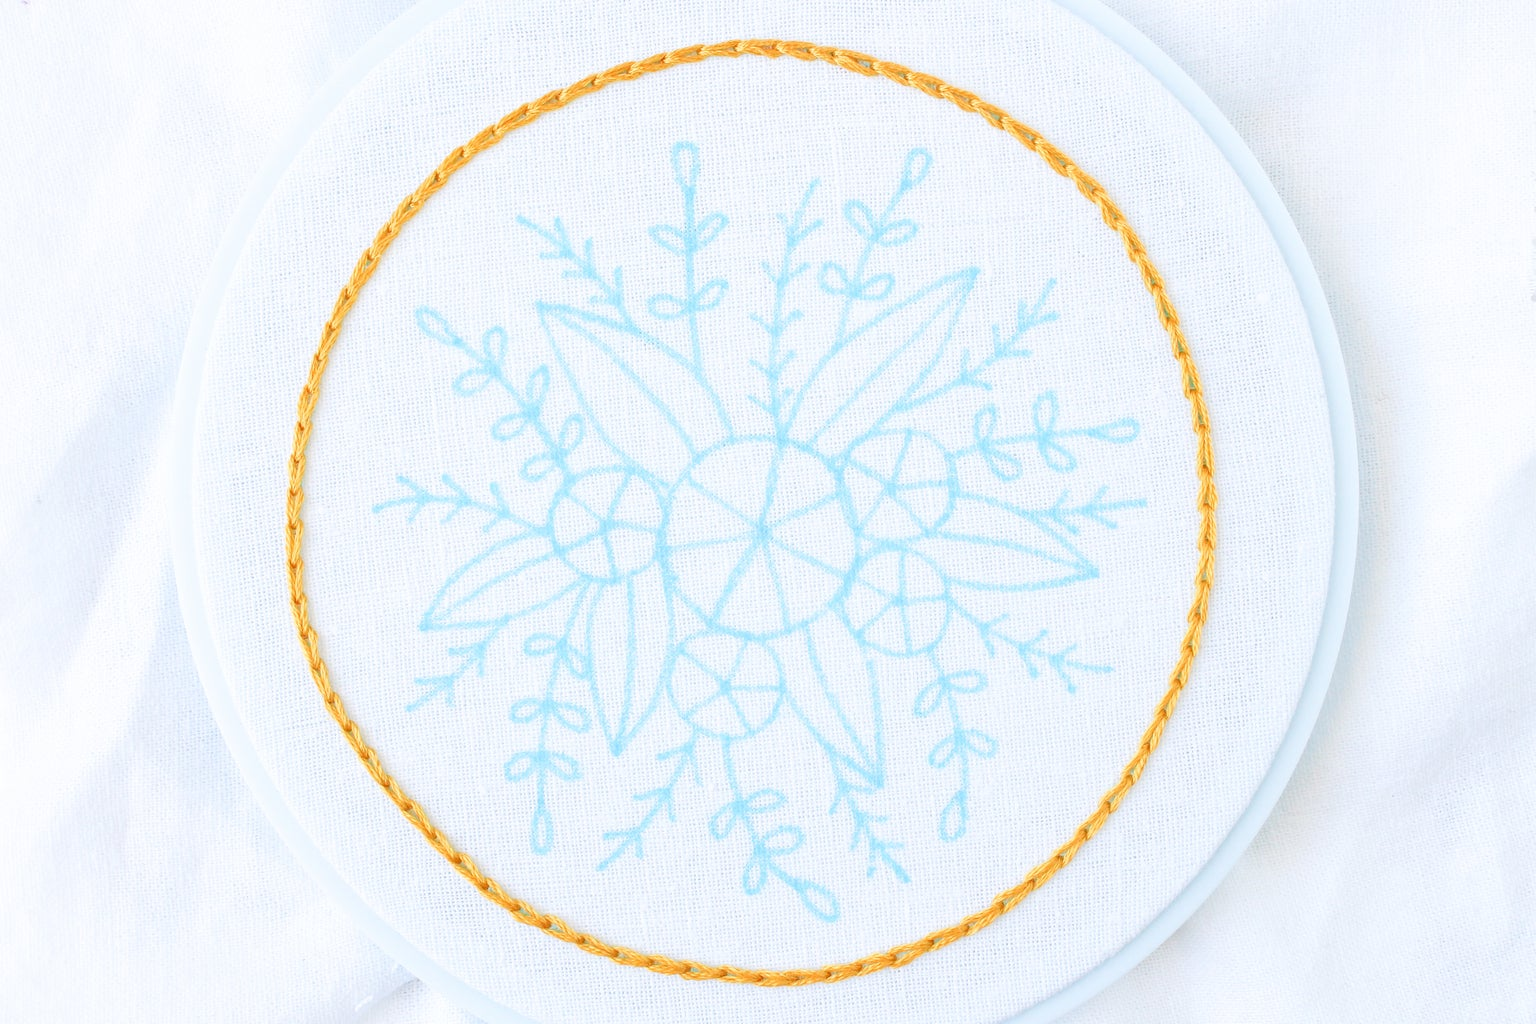 Draw a Circle With Spokes